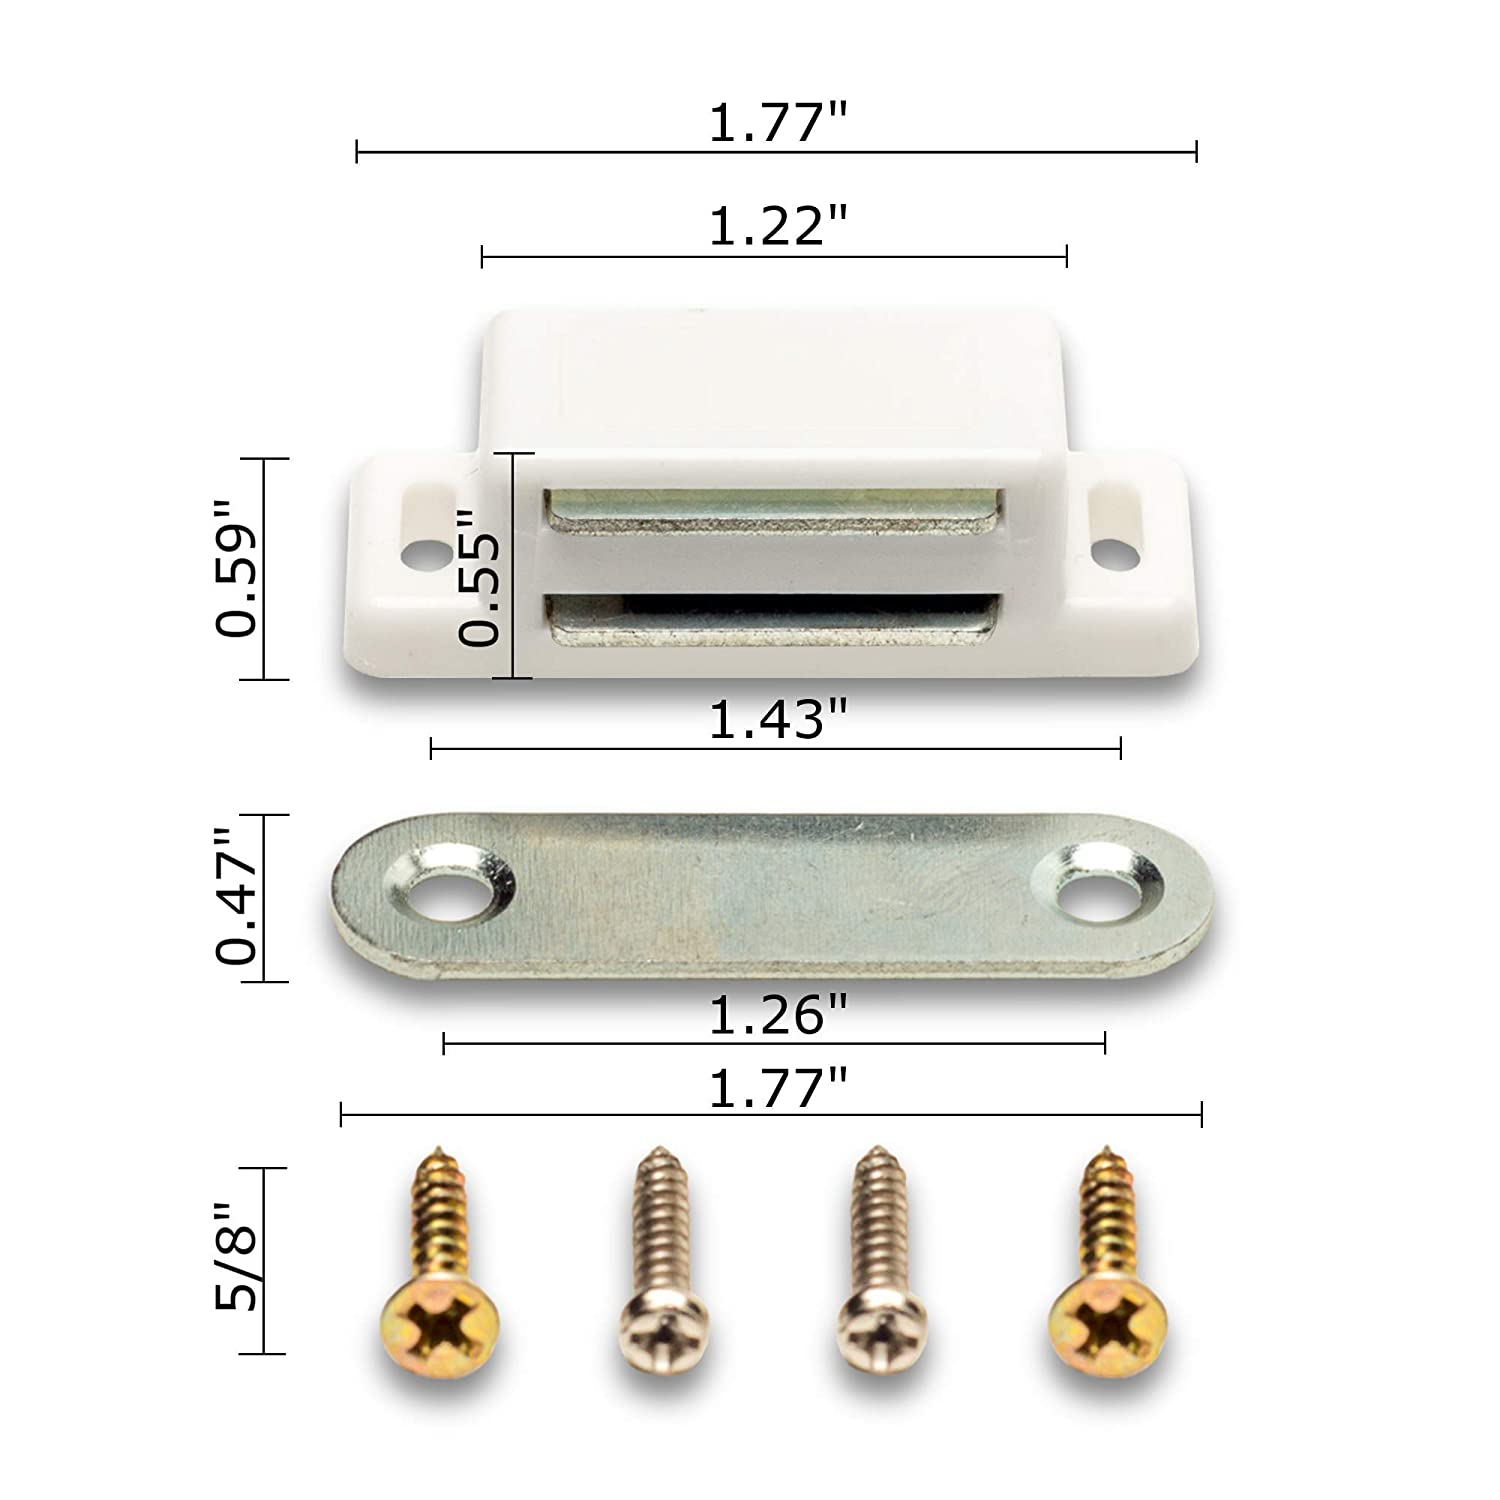 Cabinet Magnet Latch 10 Pack Best for Closure of A Drawer Easy Install White Cupboard and Kitchen Cabinet Hardware Screws Included Shutter Keep Your Doors Shut with Our Magnetic Catches